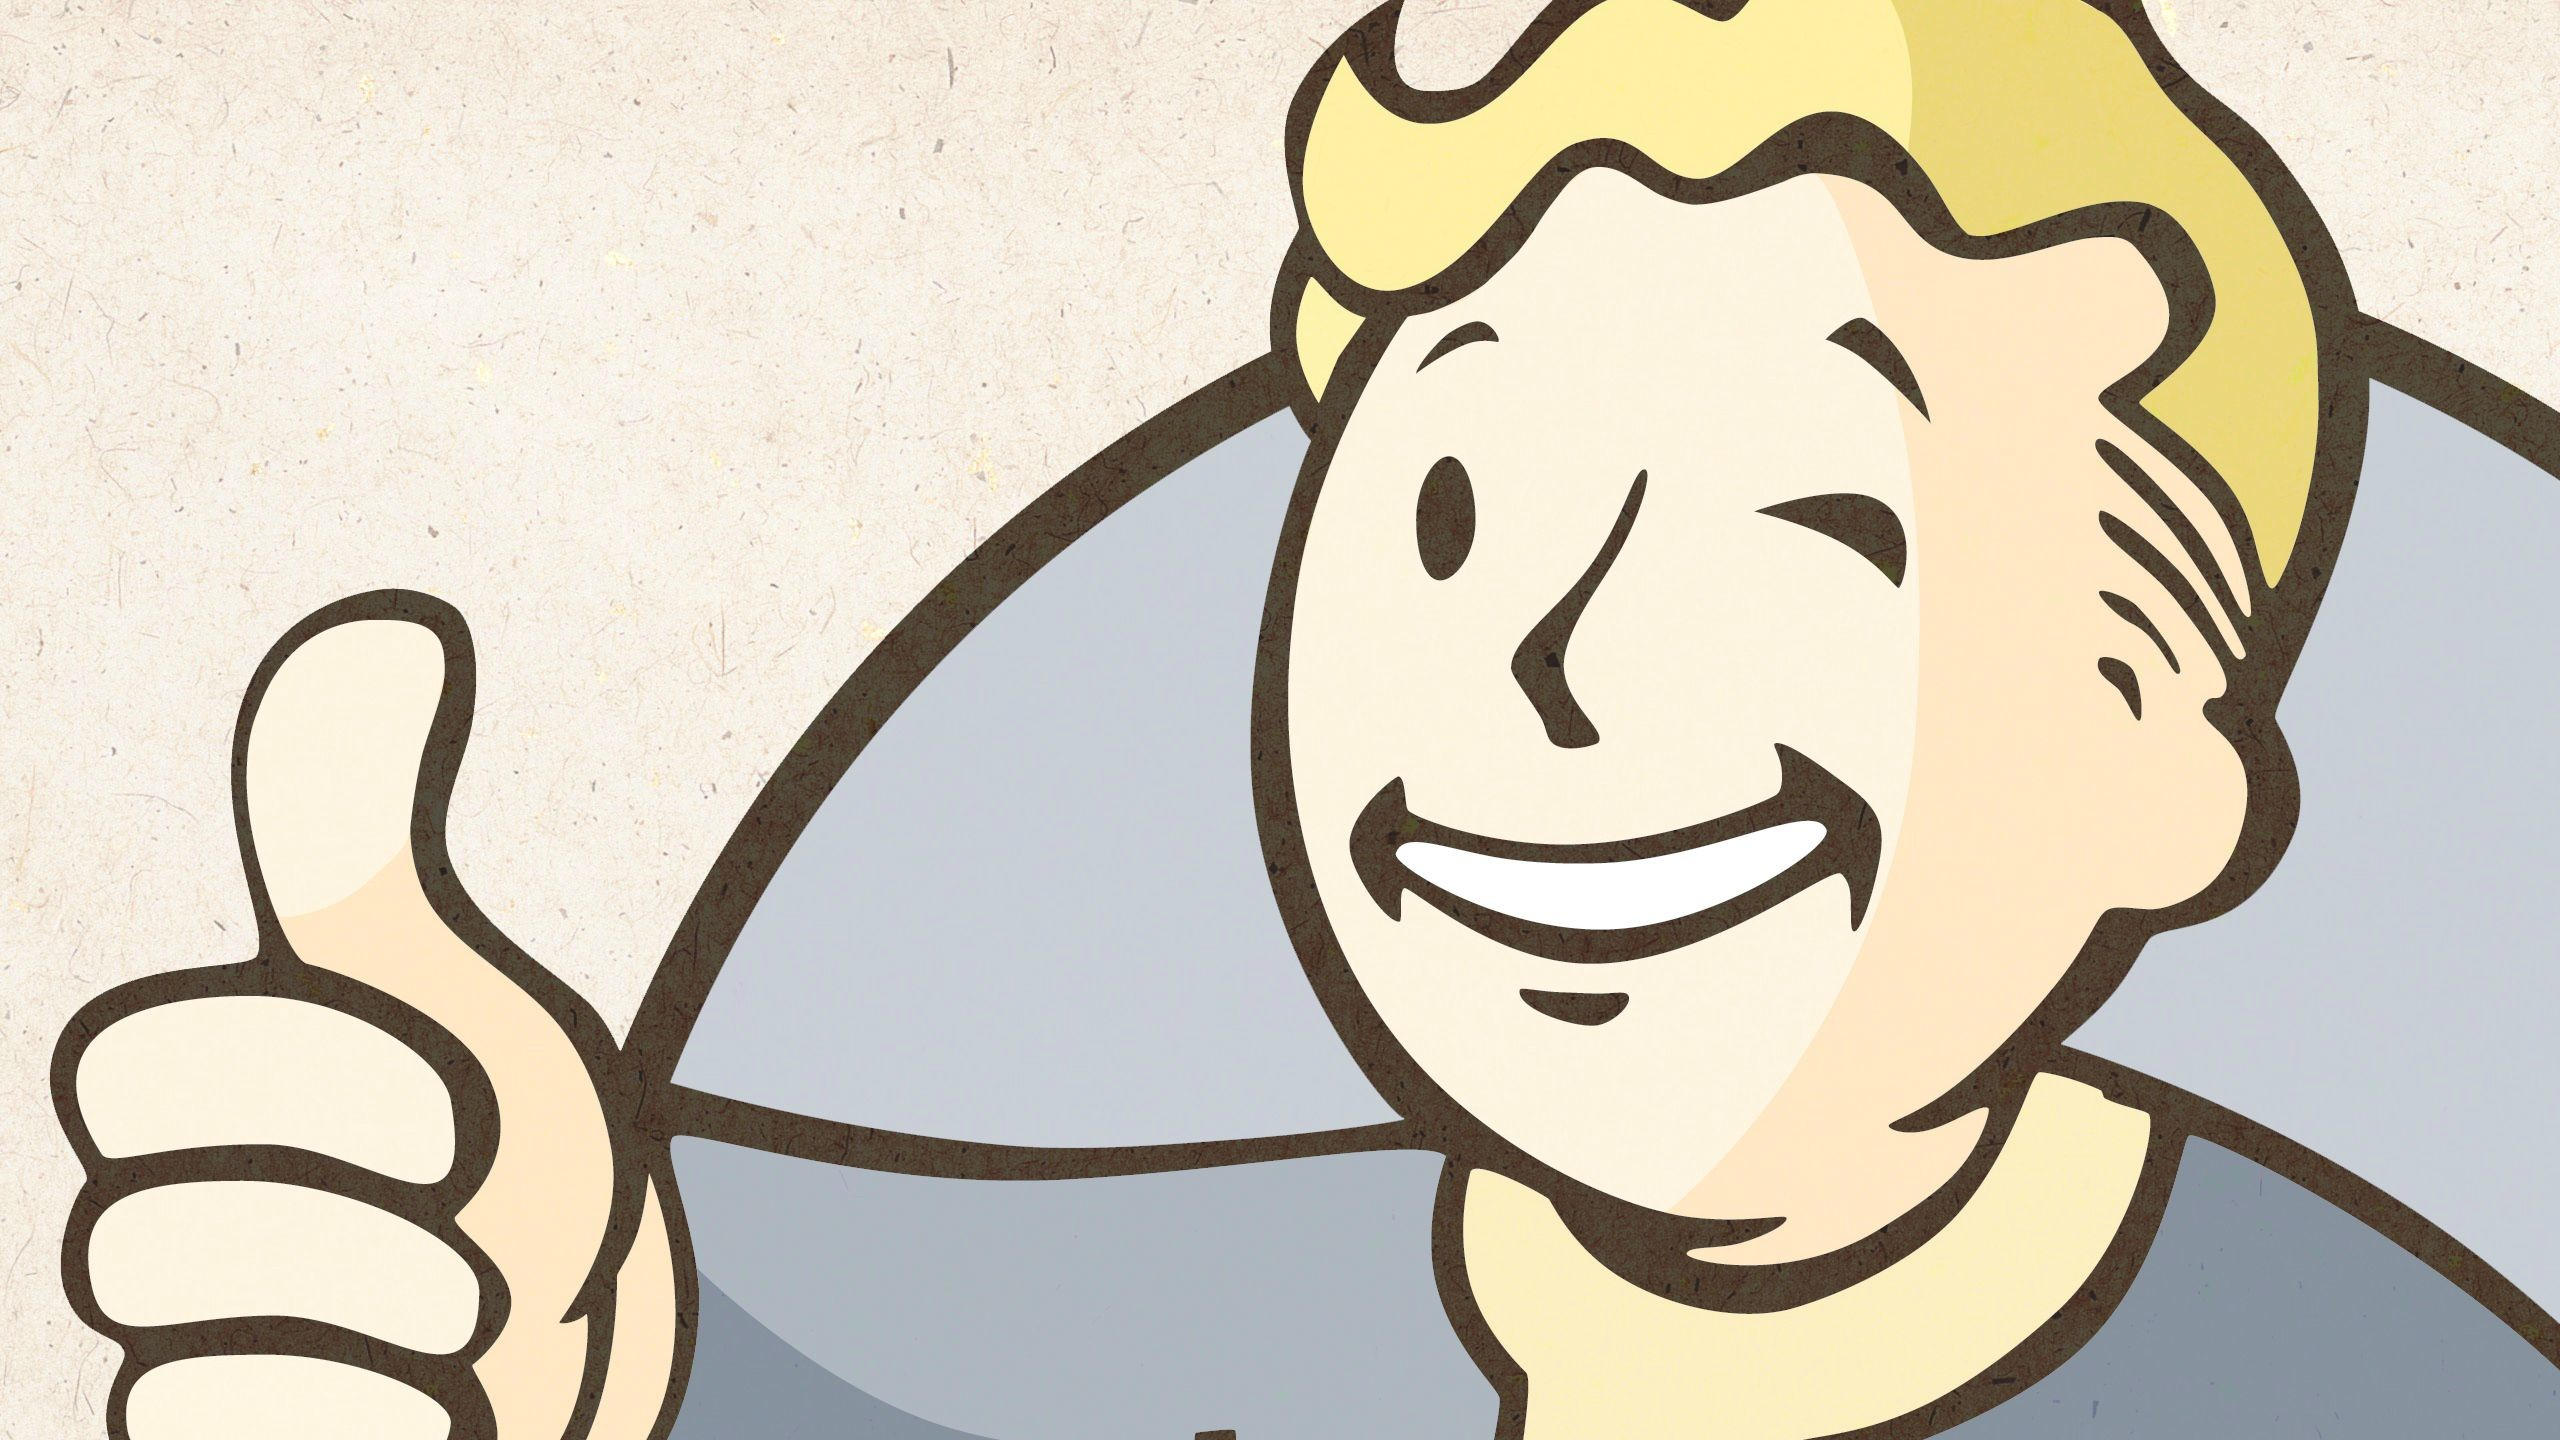 Fallout 4 – Welcome Home wallpaper (no text)